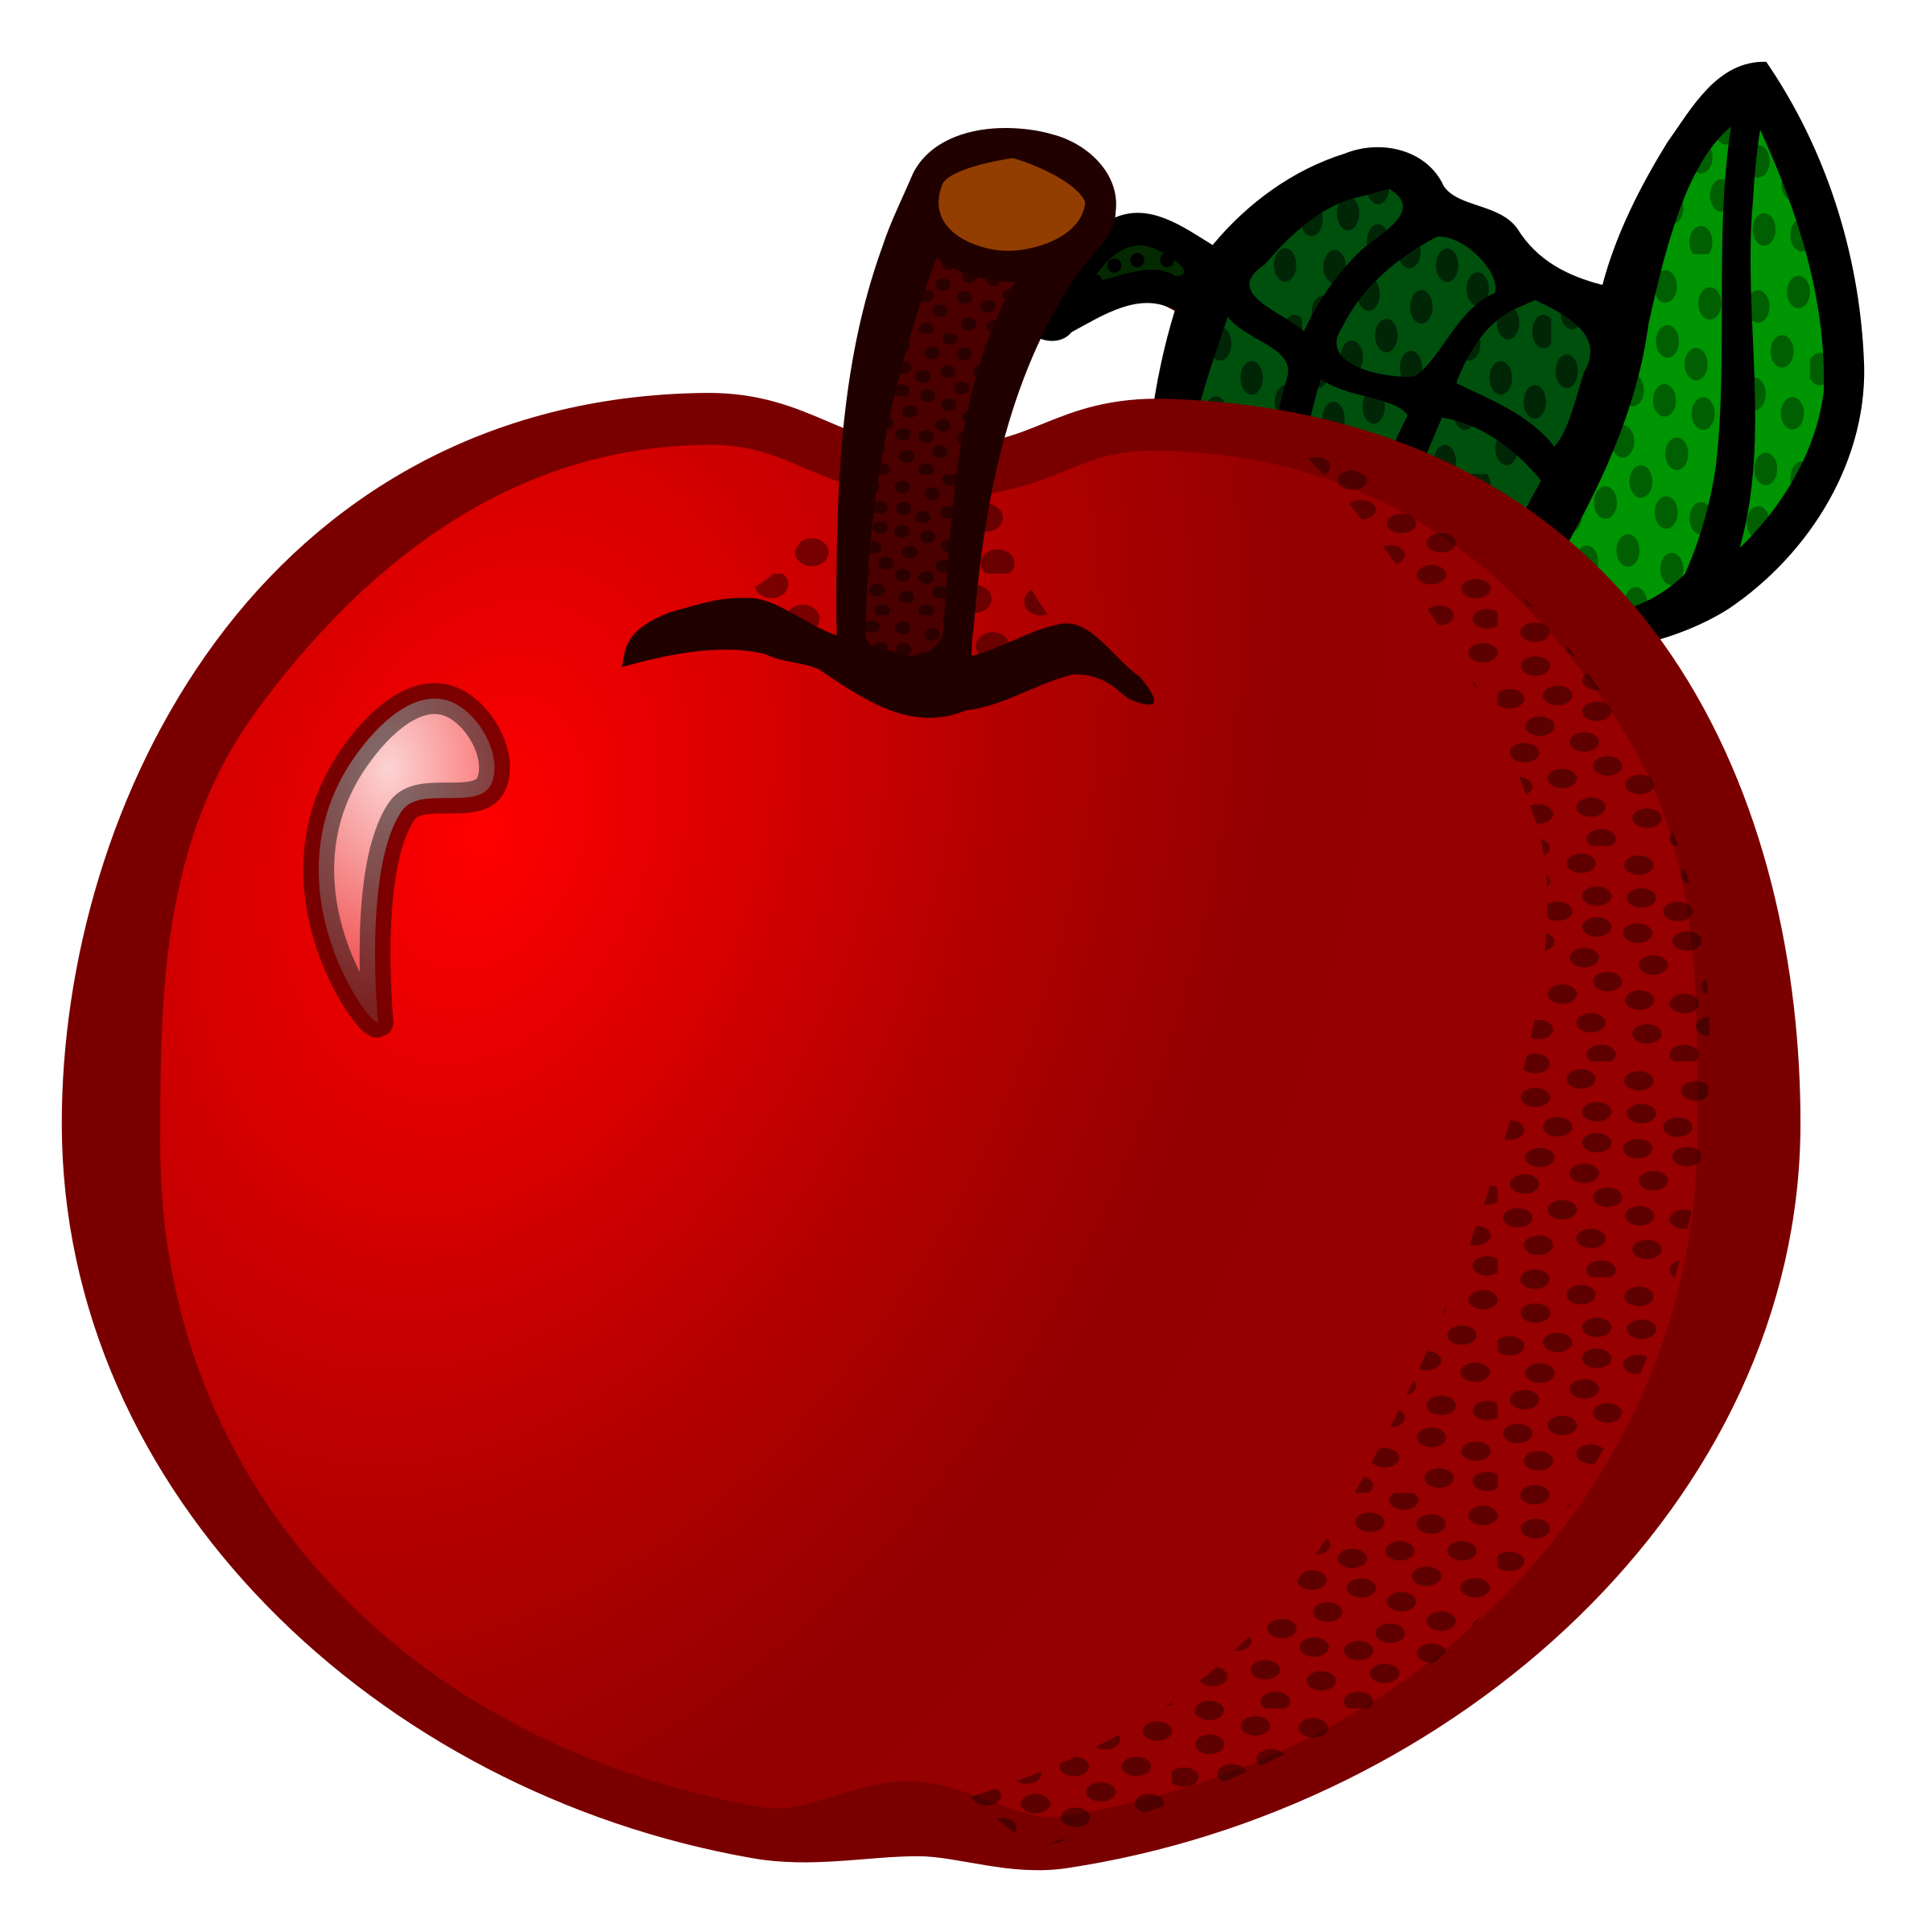 Red apple outline clipart jpg freeuse download apple - coloured Icons PNG - Free PNG and Icons Downloads jpg freeuse download